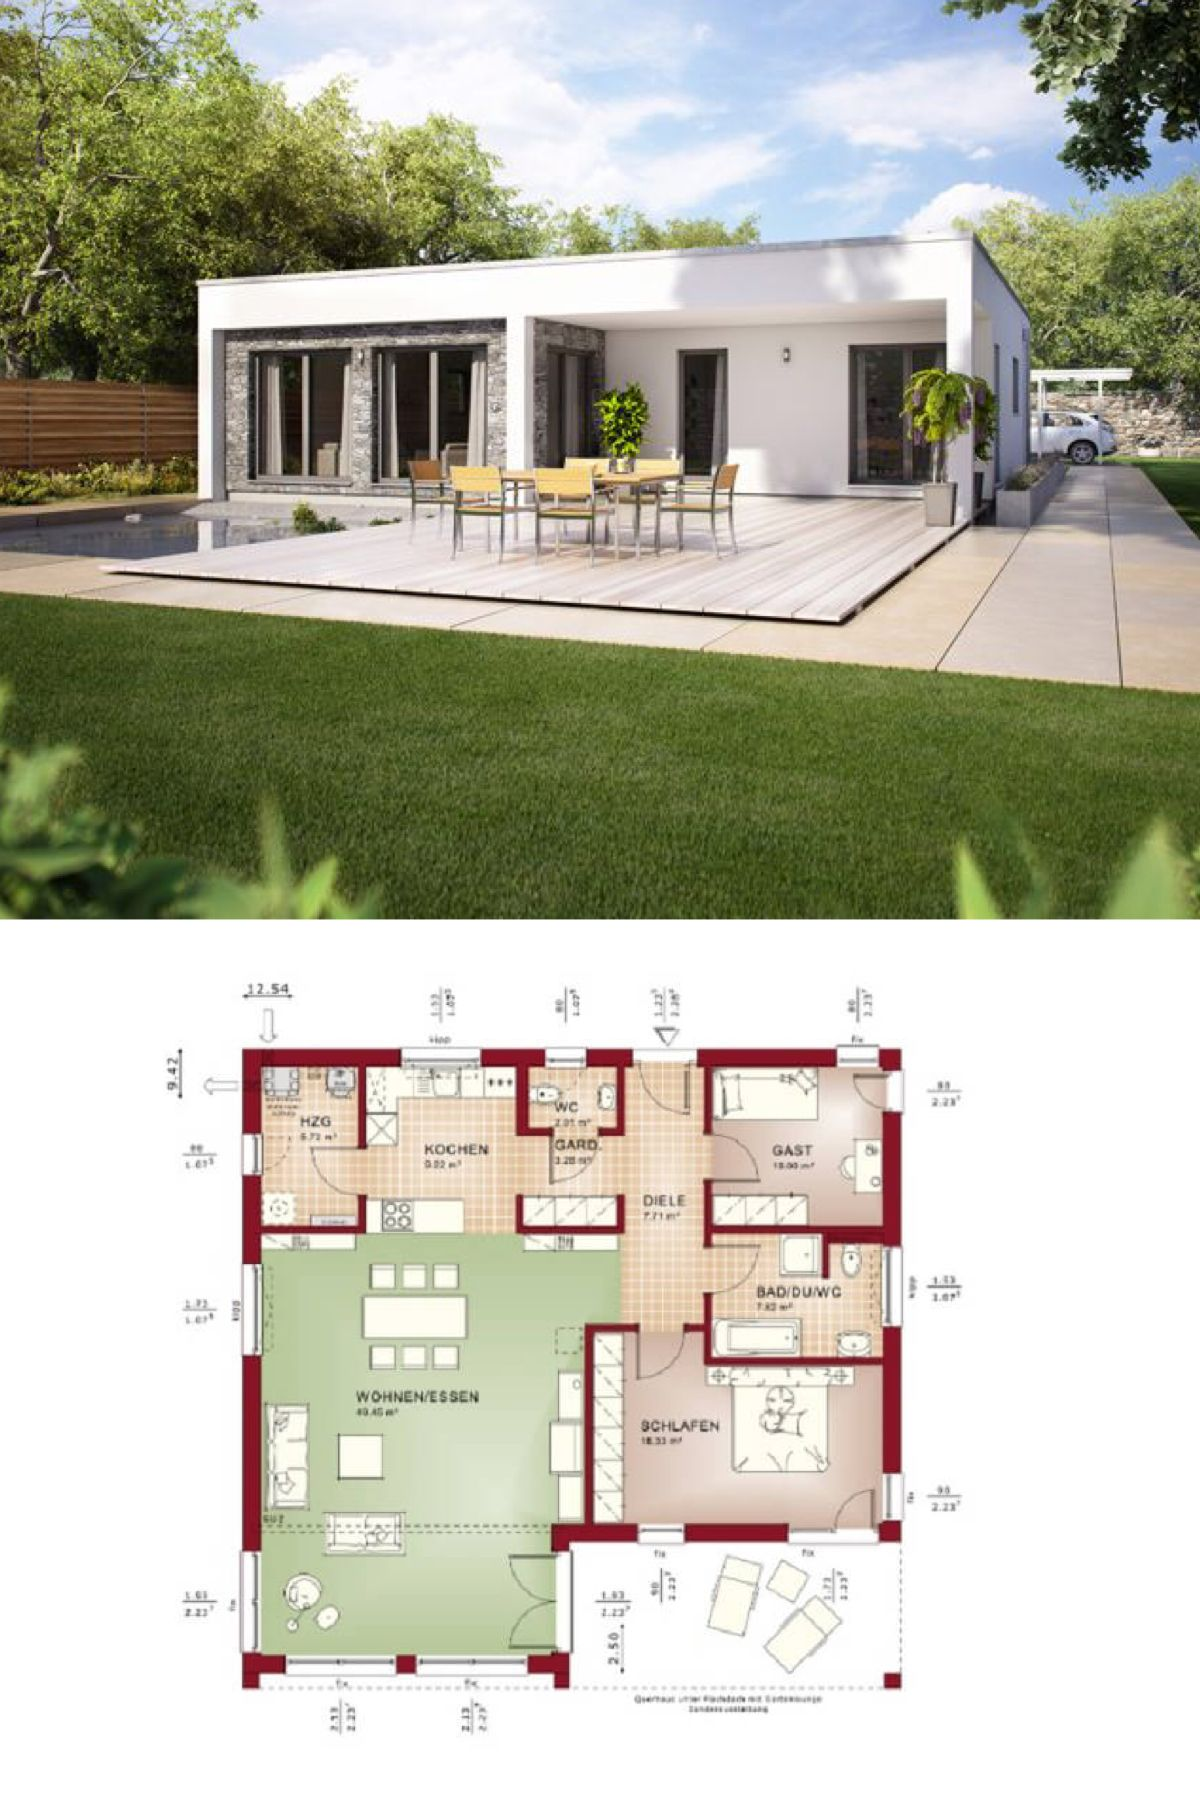 Home design Plan 13x13m with 3 bedrooms Modern bungalow